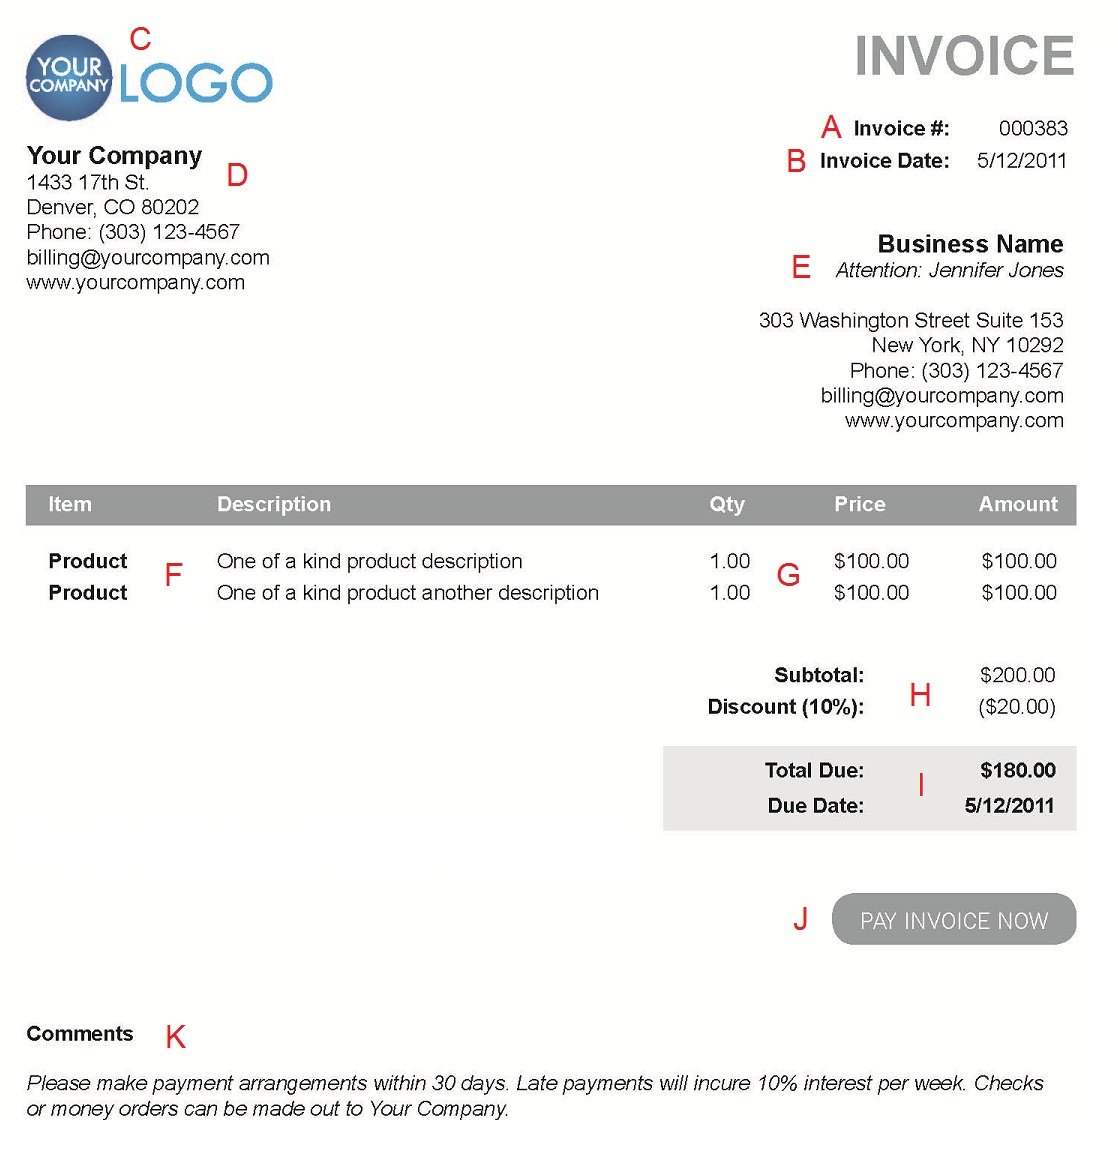 Ultrablogus  Surprising The  Different Sections Of An Electronic Payment Invoice With Interesting A  With Enchanting Copy Of The Receipt Also Read Receipts In Outlook In Addition Acknowledgement Of Receipt Of Payment And Sephora No Receipt Return Policy As Well As Copies Of Receipts Additionally Babies R Us Gift Receipt From Paysimplecom With Ultrablogus  Interesting The  Different Sections Of An Electronic Payment Invoice With Enchanting A  And Surprising Copy Of The Receipt Also Read Receipts In Outlook In Addition Acknowledgement Of Receipt Of Payment From Paysimplecom